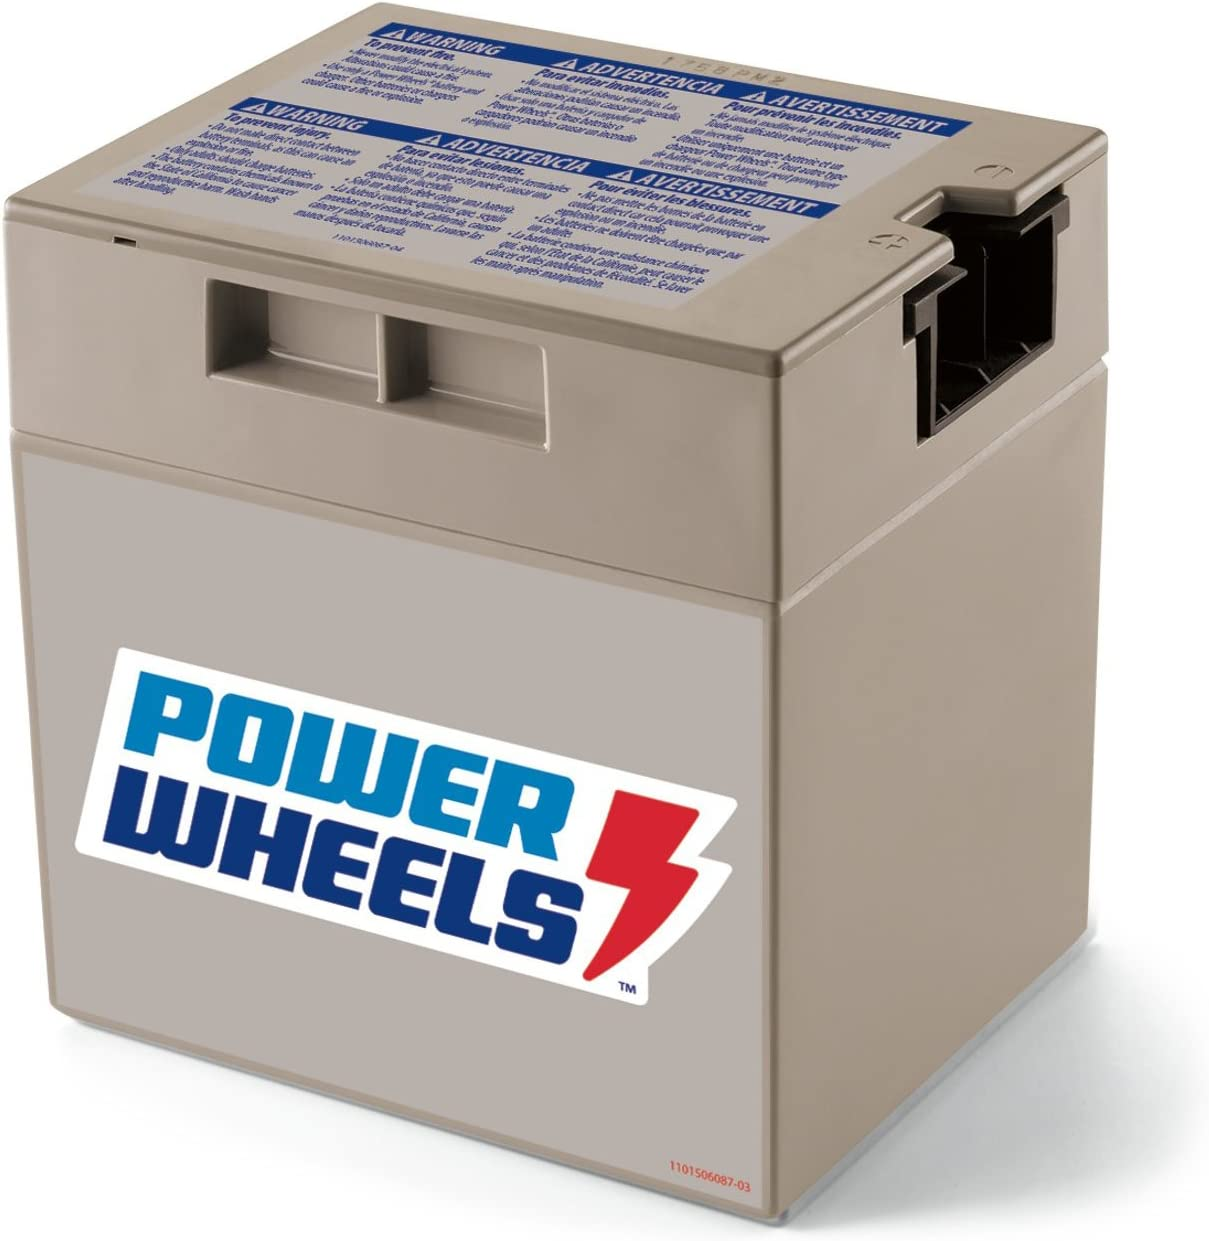 B00004TFT1 Power Wheels 12-Volt Rechargeable Replacement Battery 713szxf5-9L